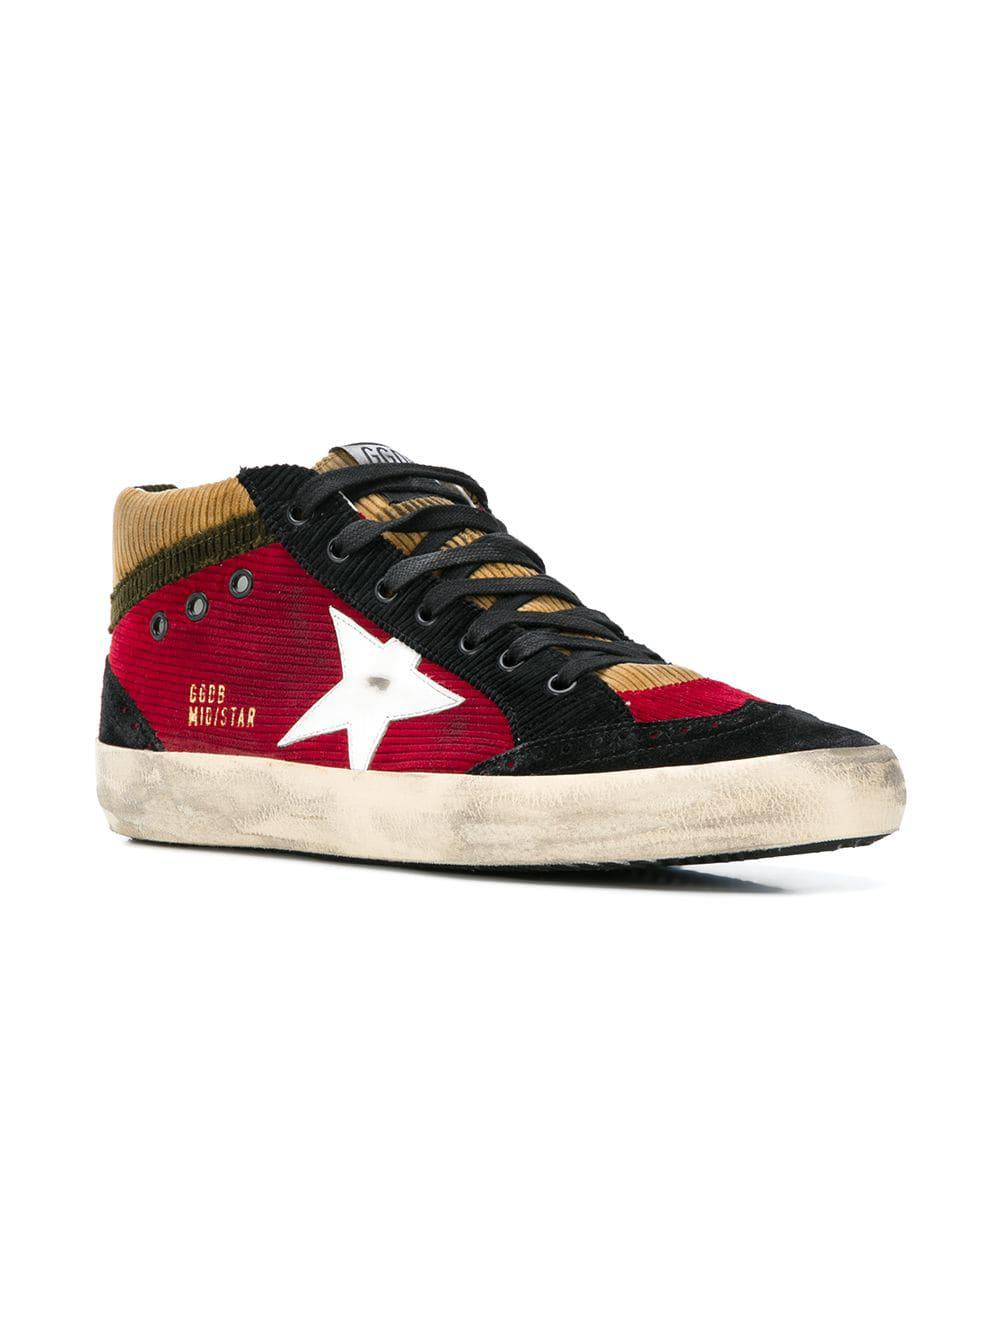 2a59203467f7c Lyst - Golden Goose Deluxe Brand Mid Star Corduroy Sneakers in Red for Men